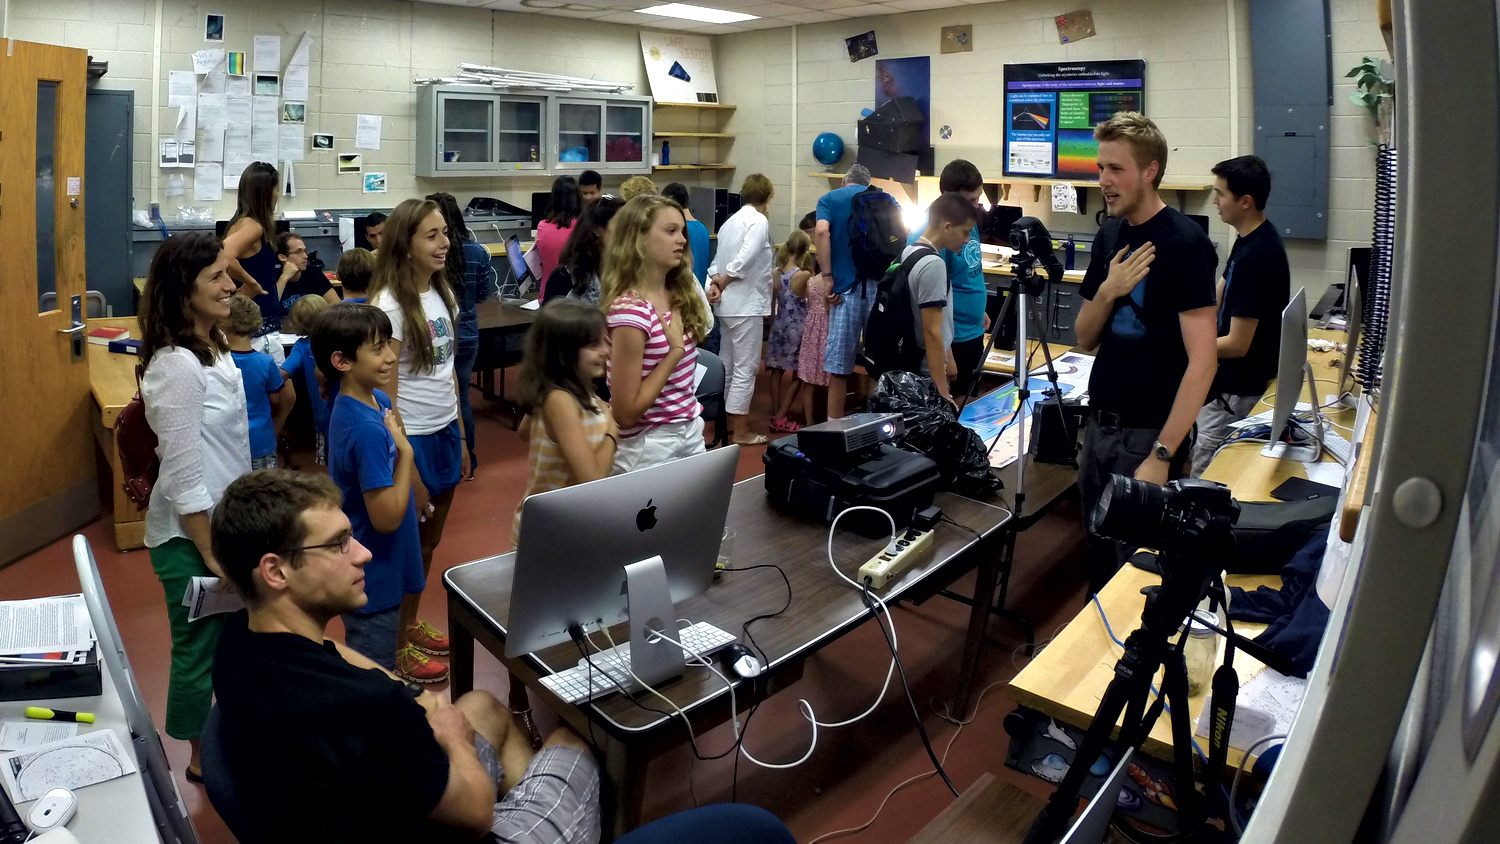 HPF group members and other Astrofest volunteers explain modern planet finding methods where the holy grail is to find habitable planets suitable for life.